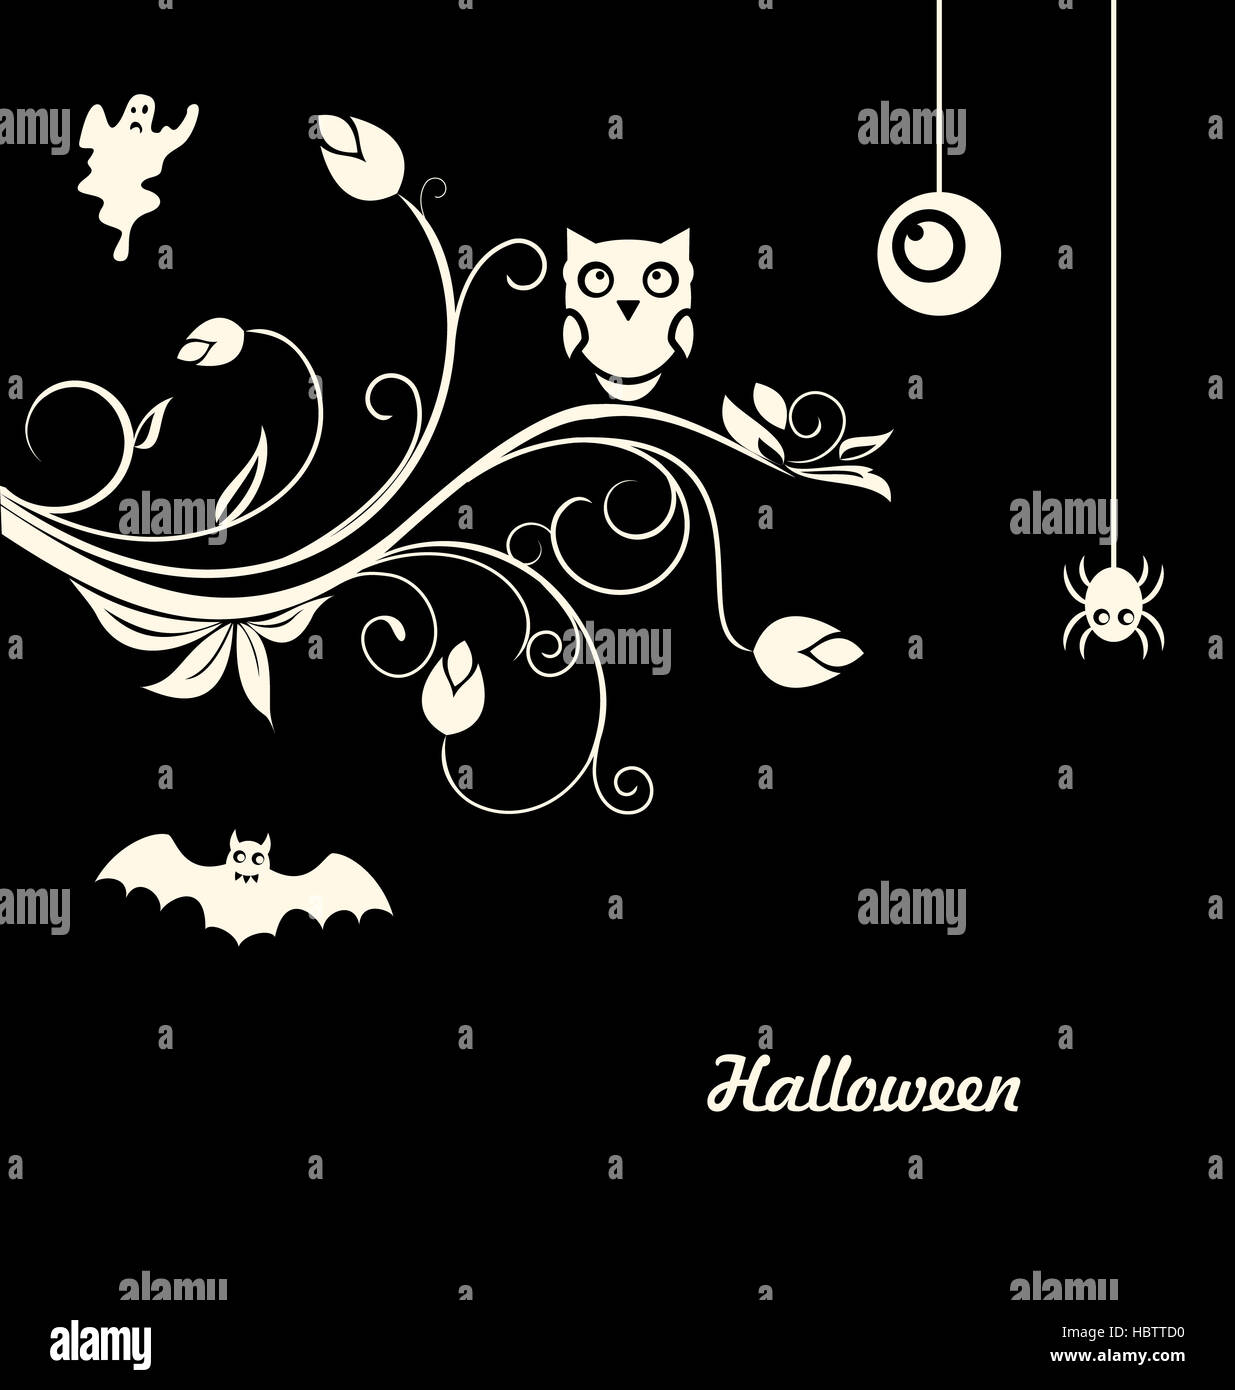 Halloween Flourish Dark Background - Stock Image